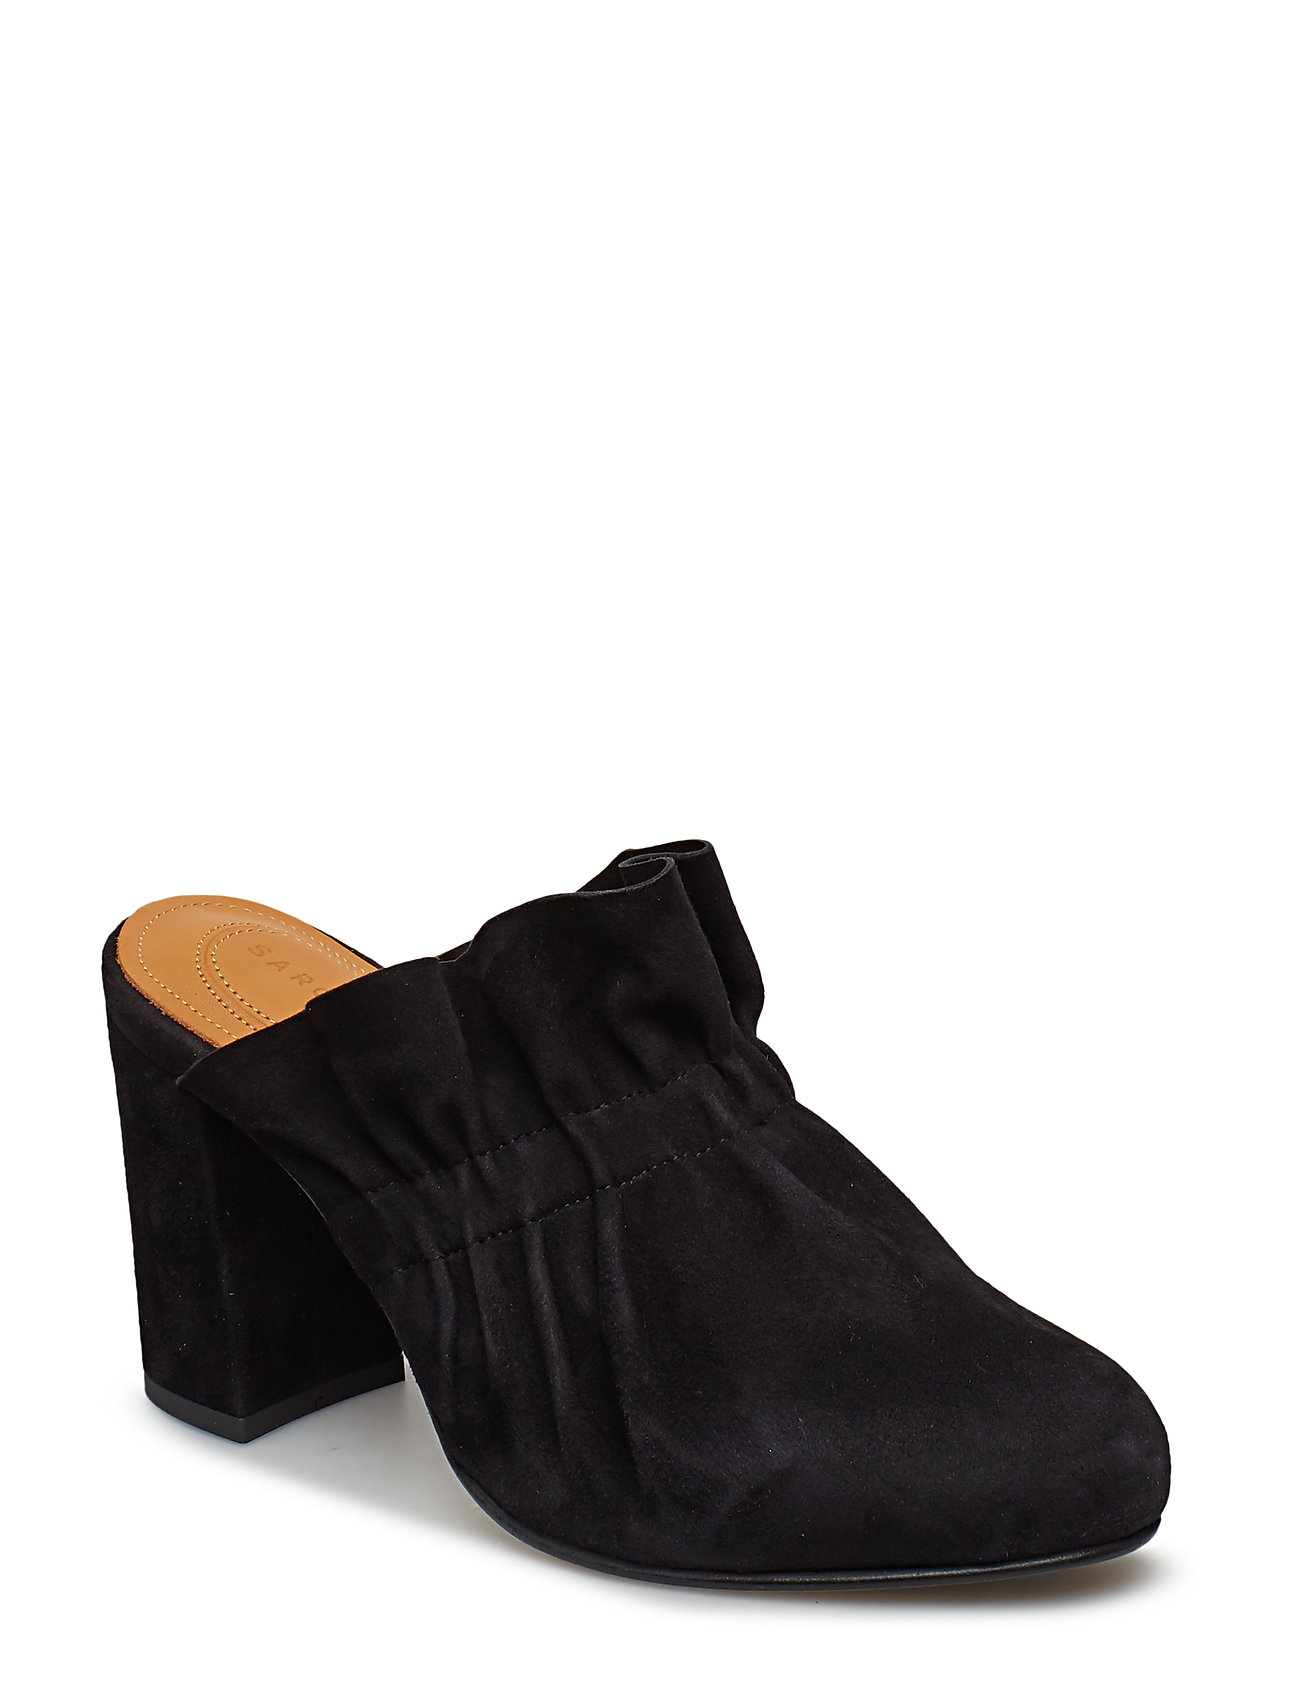 Image of Unique Suede Mules Slip-ins Sort Sargossa (3143623861)